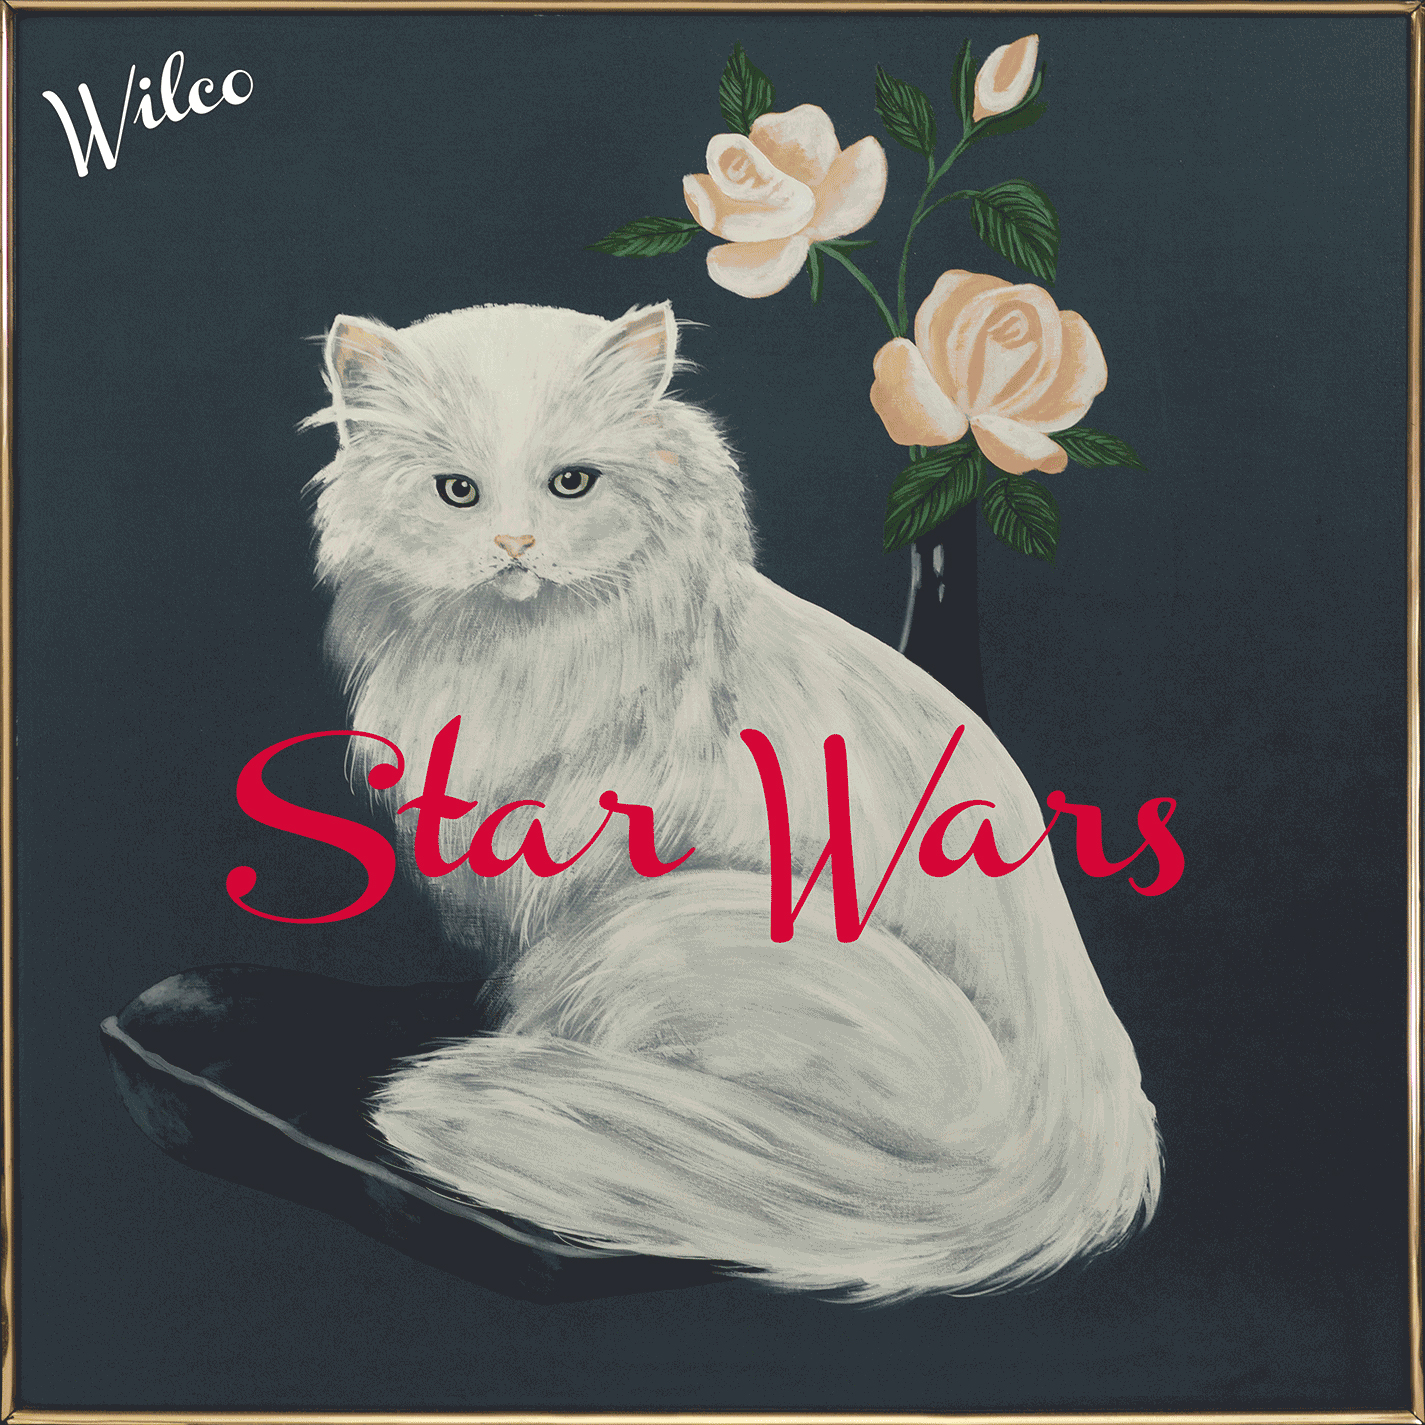 Woohoo! Get a Free New Album from Wilco